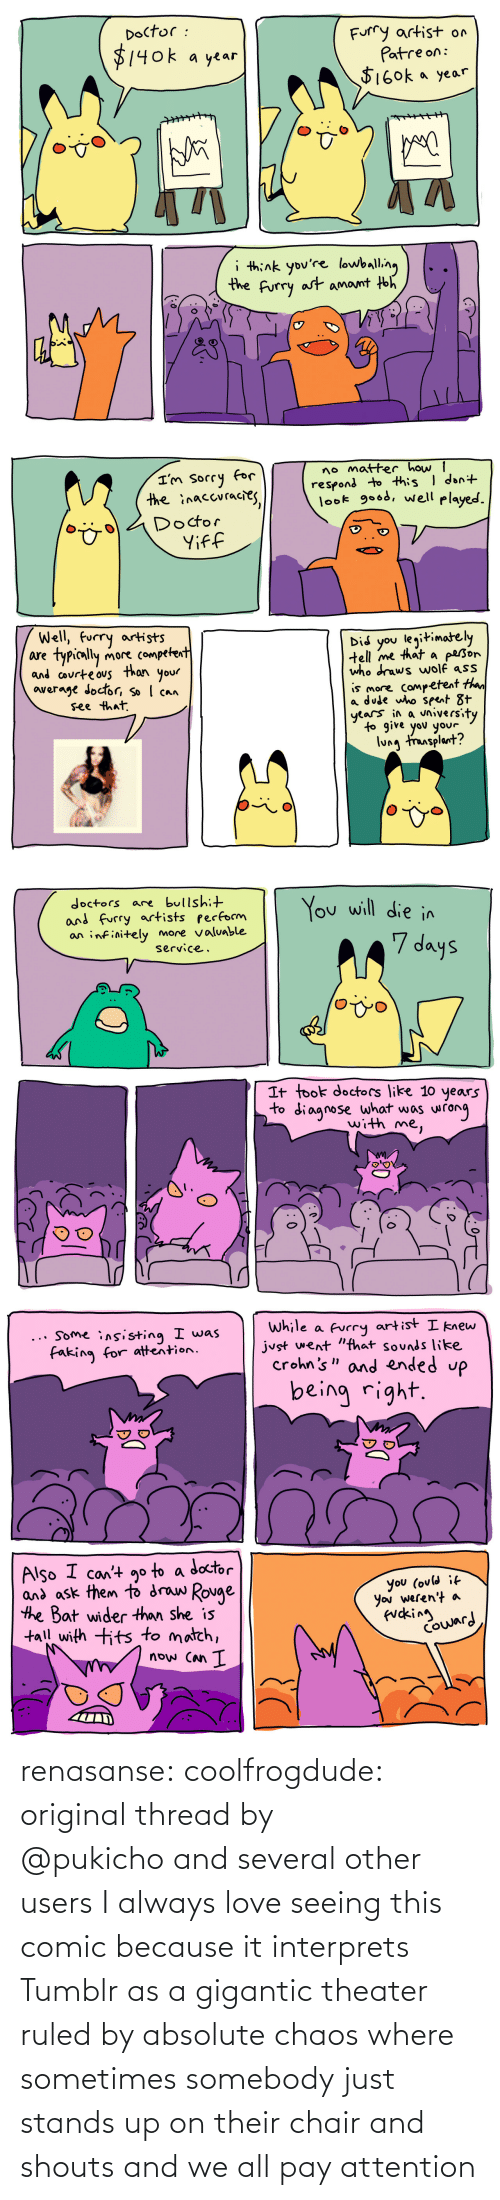 Chair: renasanse:  coolfrogdude: original thread by @pukichoand several other users I always love seeing this comic because it interprets Tumblr as a gigantic theater ruled by absolute chaos where sometimes somebody just stands up on their chair and shouts and we all pay attention